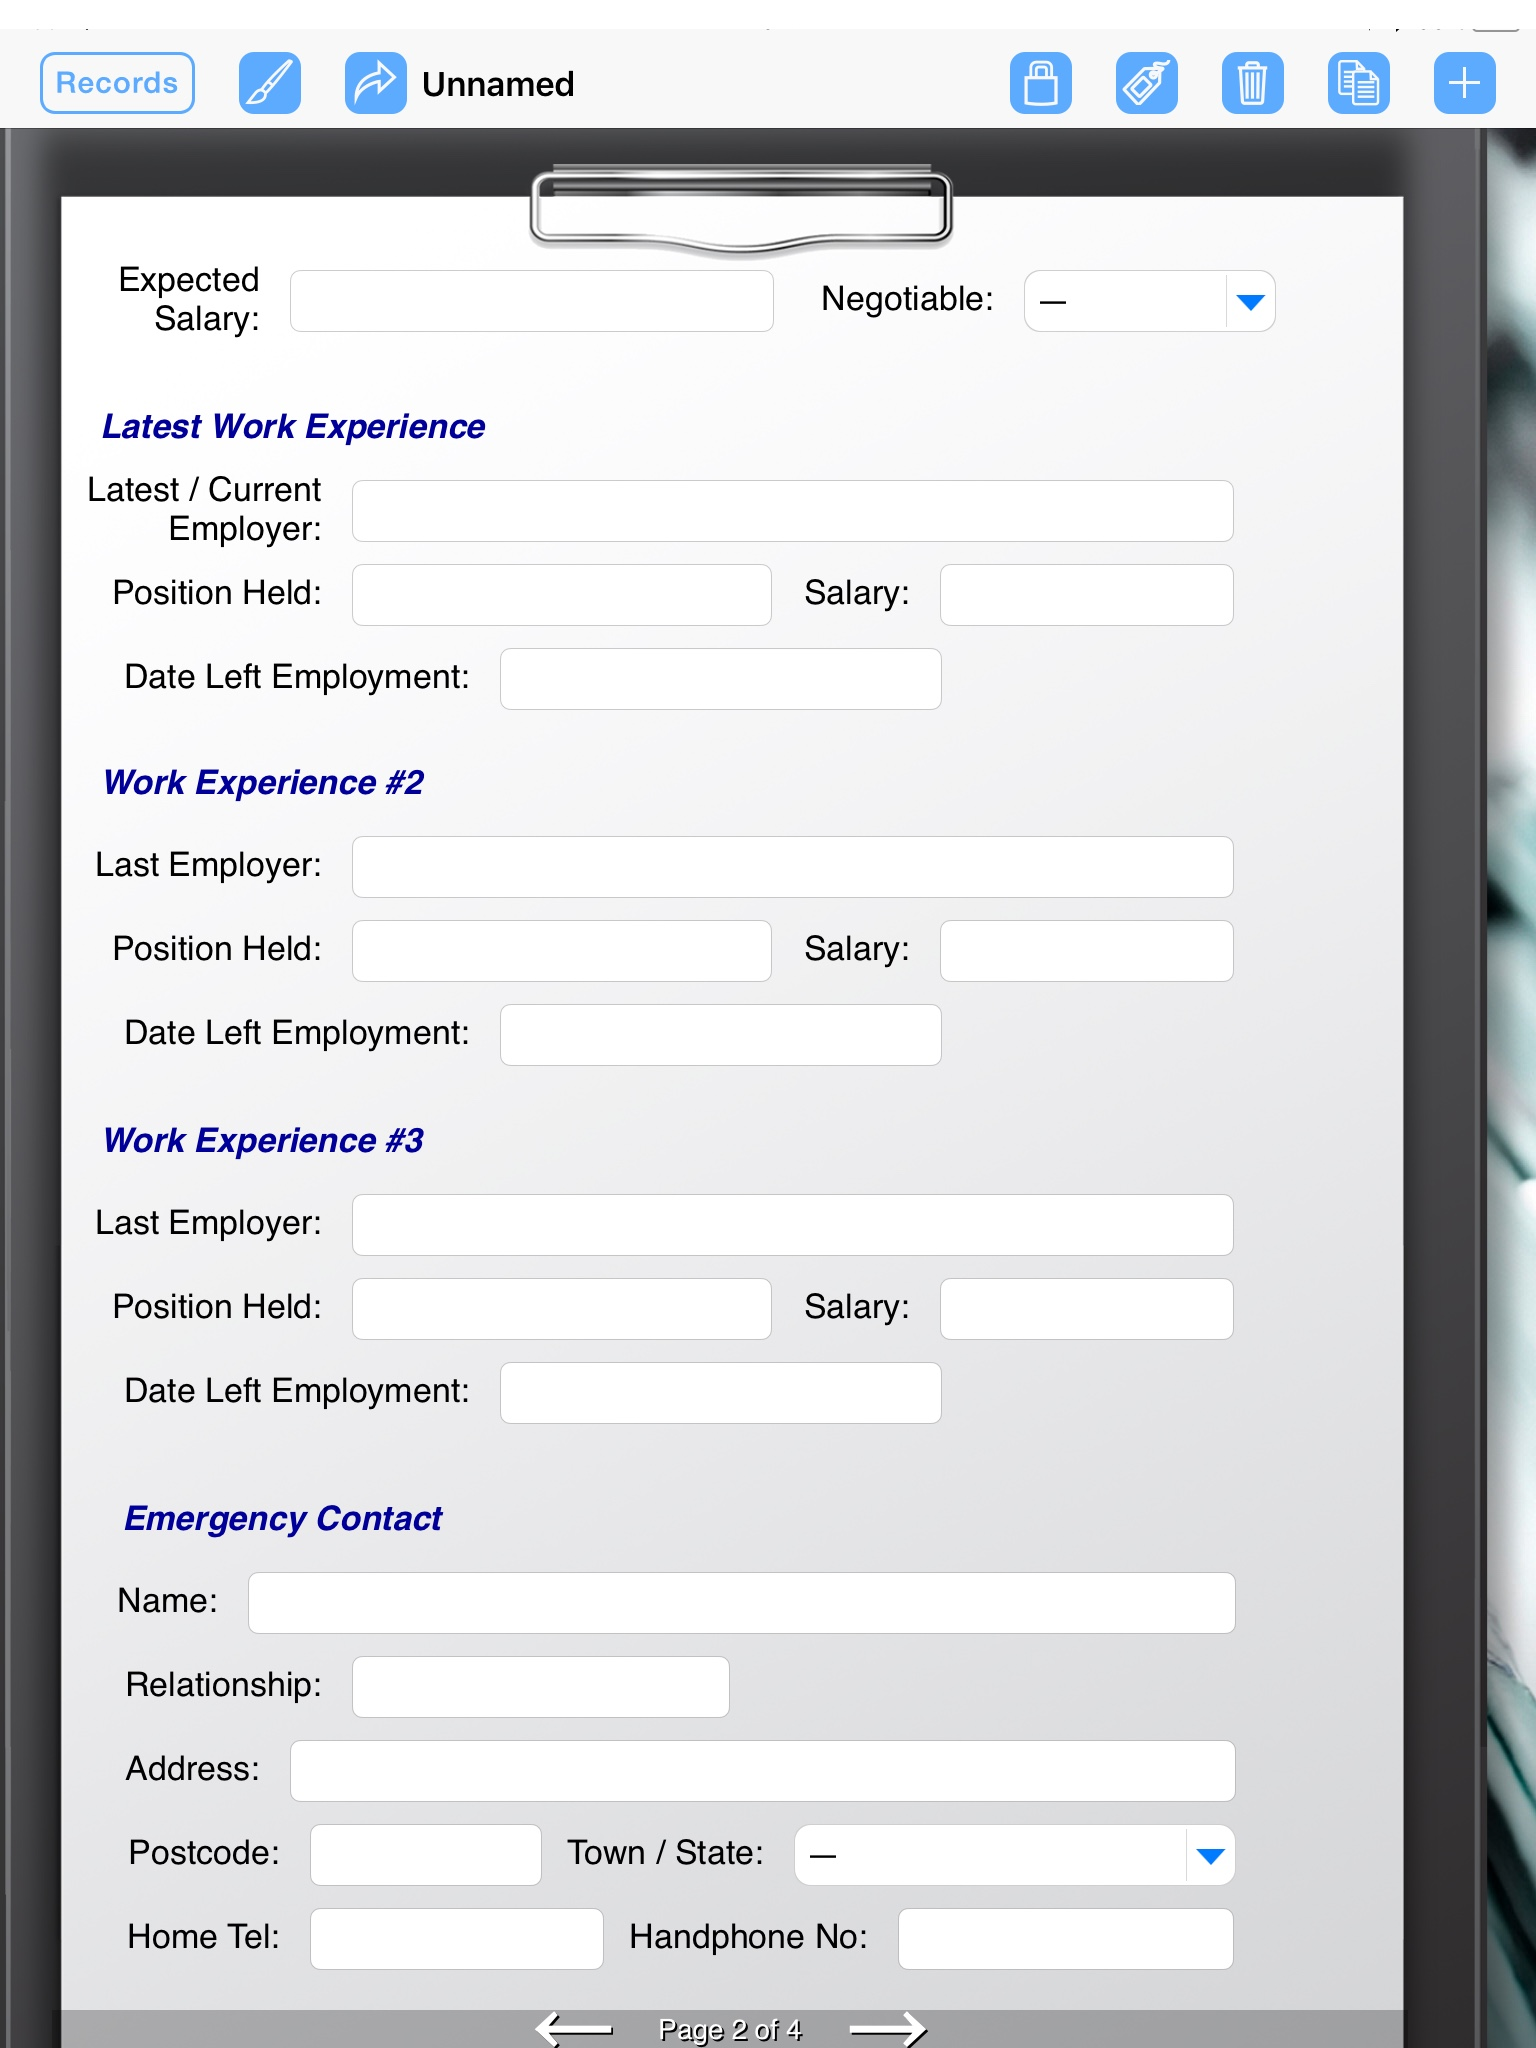 company uses digital form for employment application